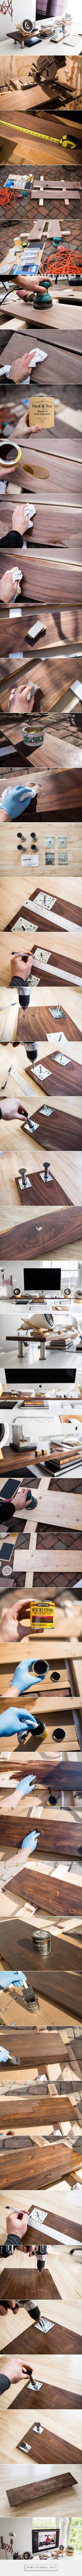 My Simple Monitor Stand that You Can Build for Under $50 (+ Giveaway) – Ugmonk... - a grouped images picture - Pin Them All